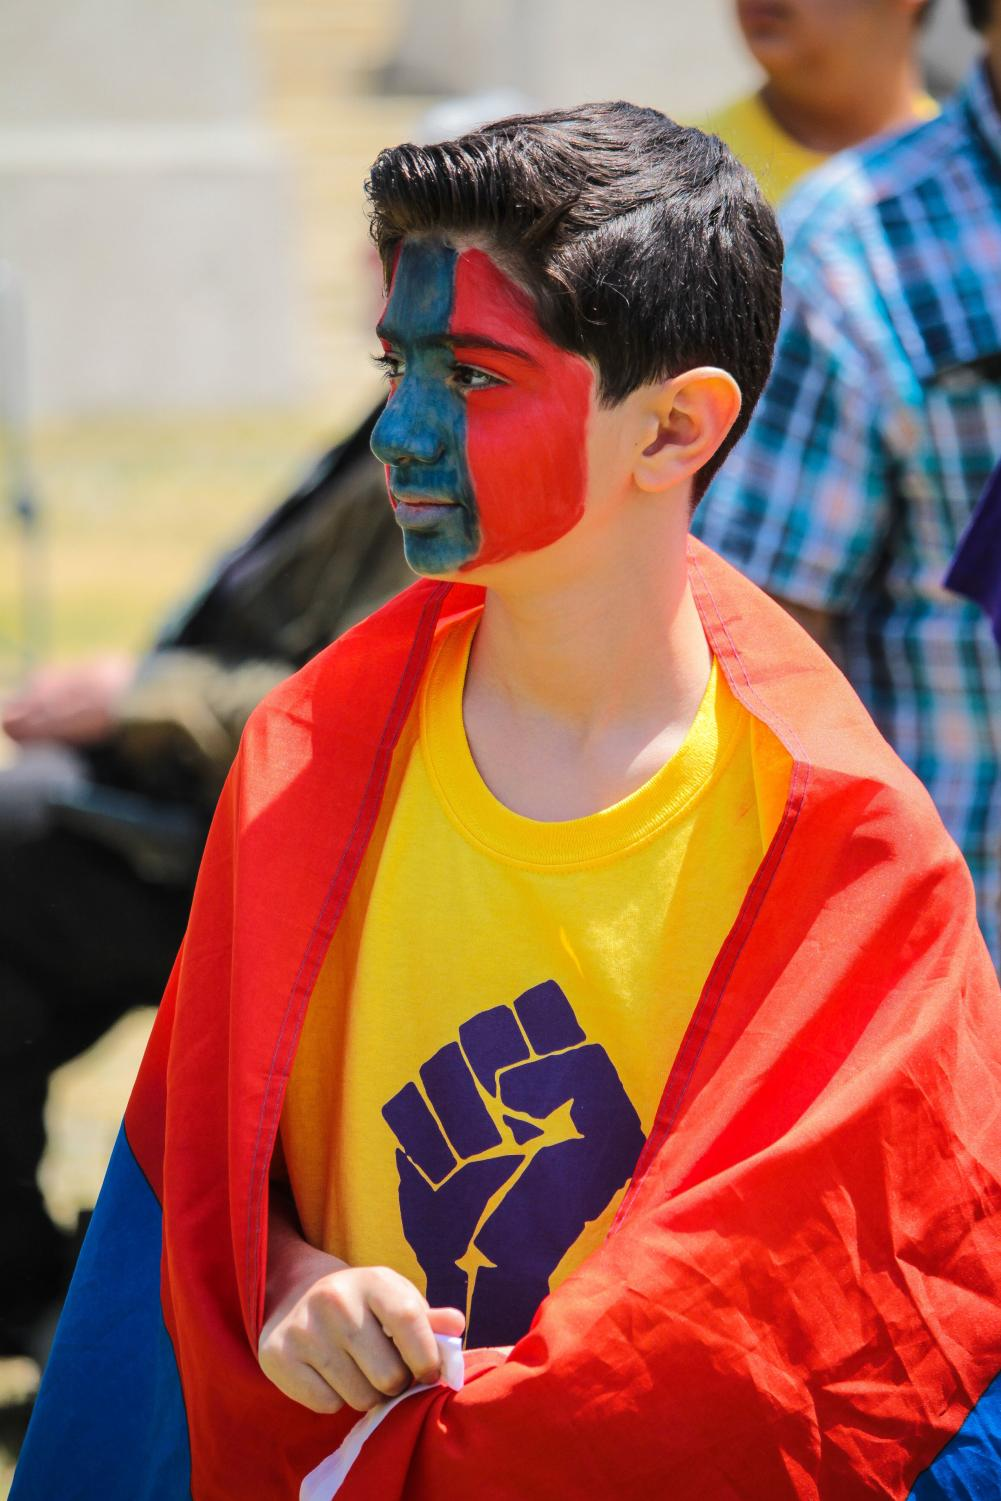 David Serobyan, 13-years-old, looks toward the crowd of protesters at the 103rd anniversary of the Armenian genocide.